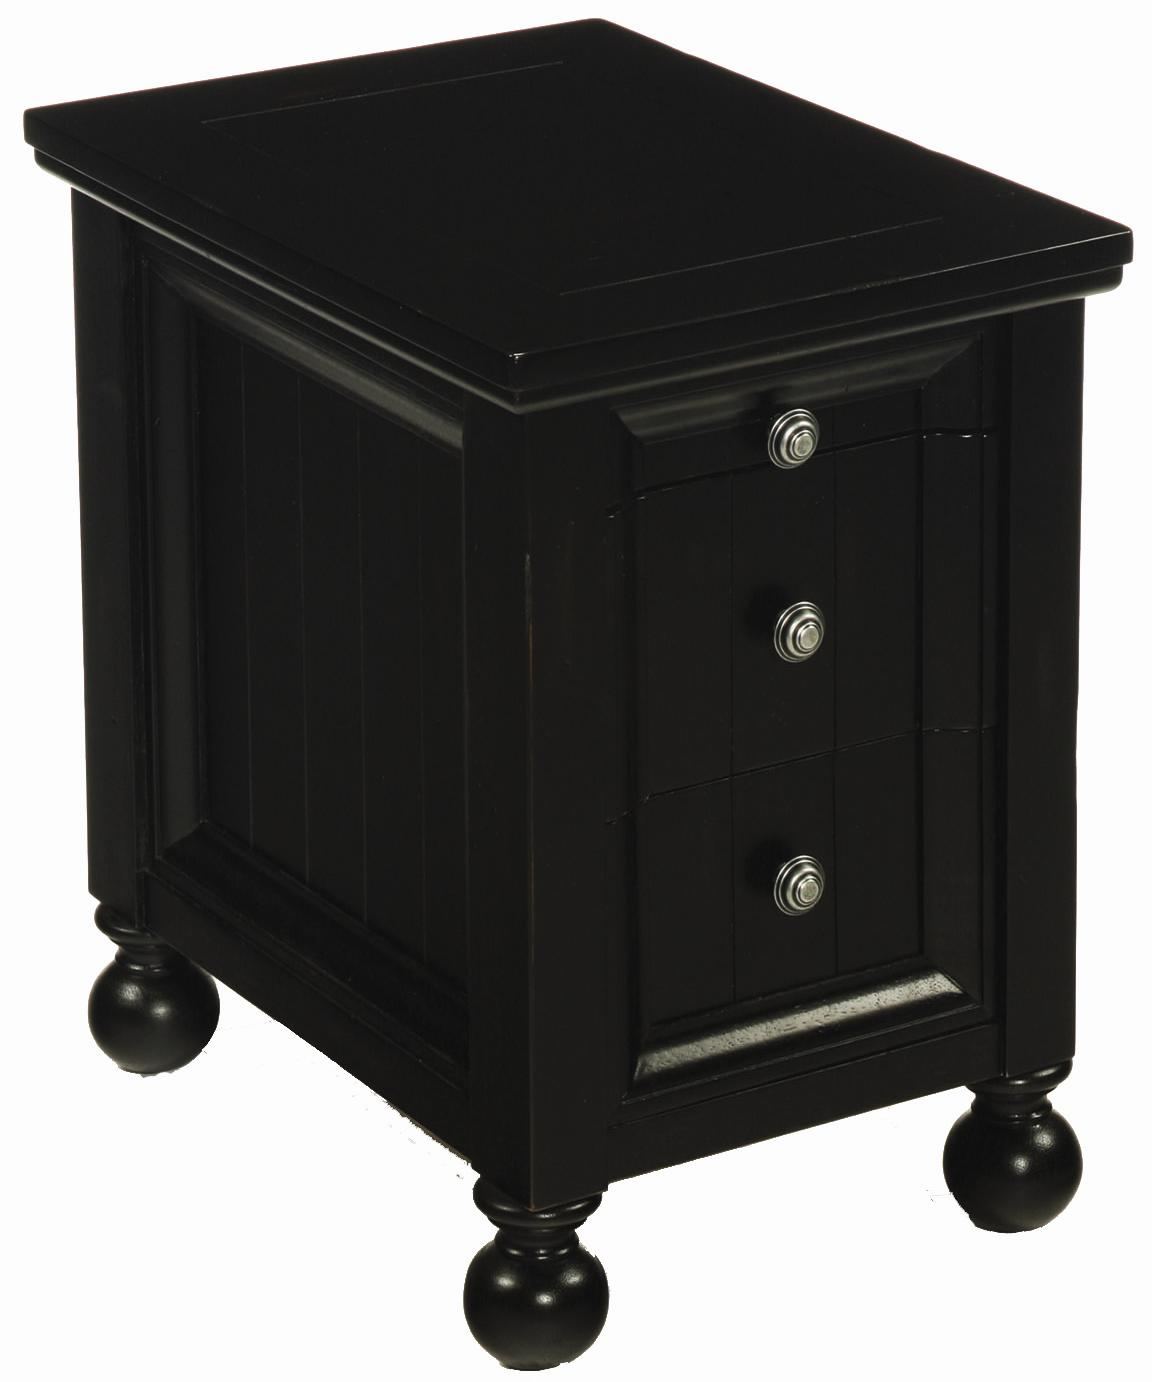 Hammary Hidden Treasures Chairside Table - Item Number: T73474-22